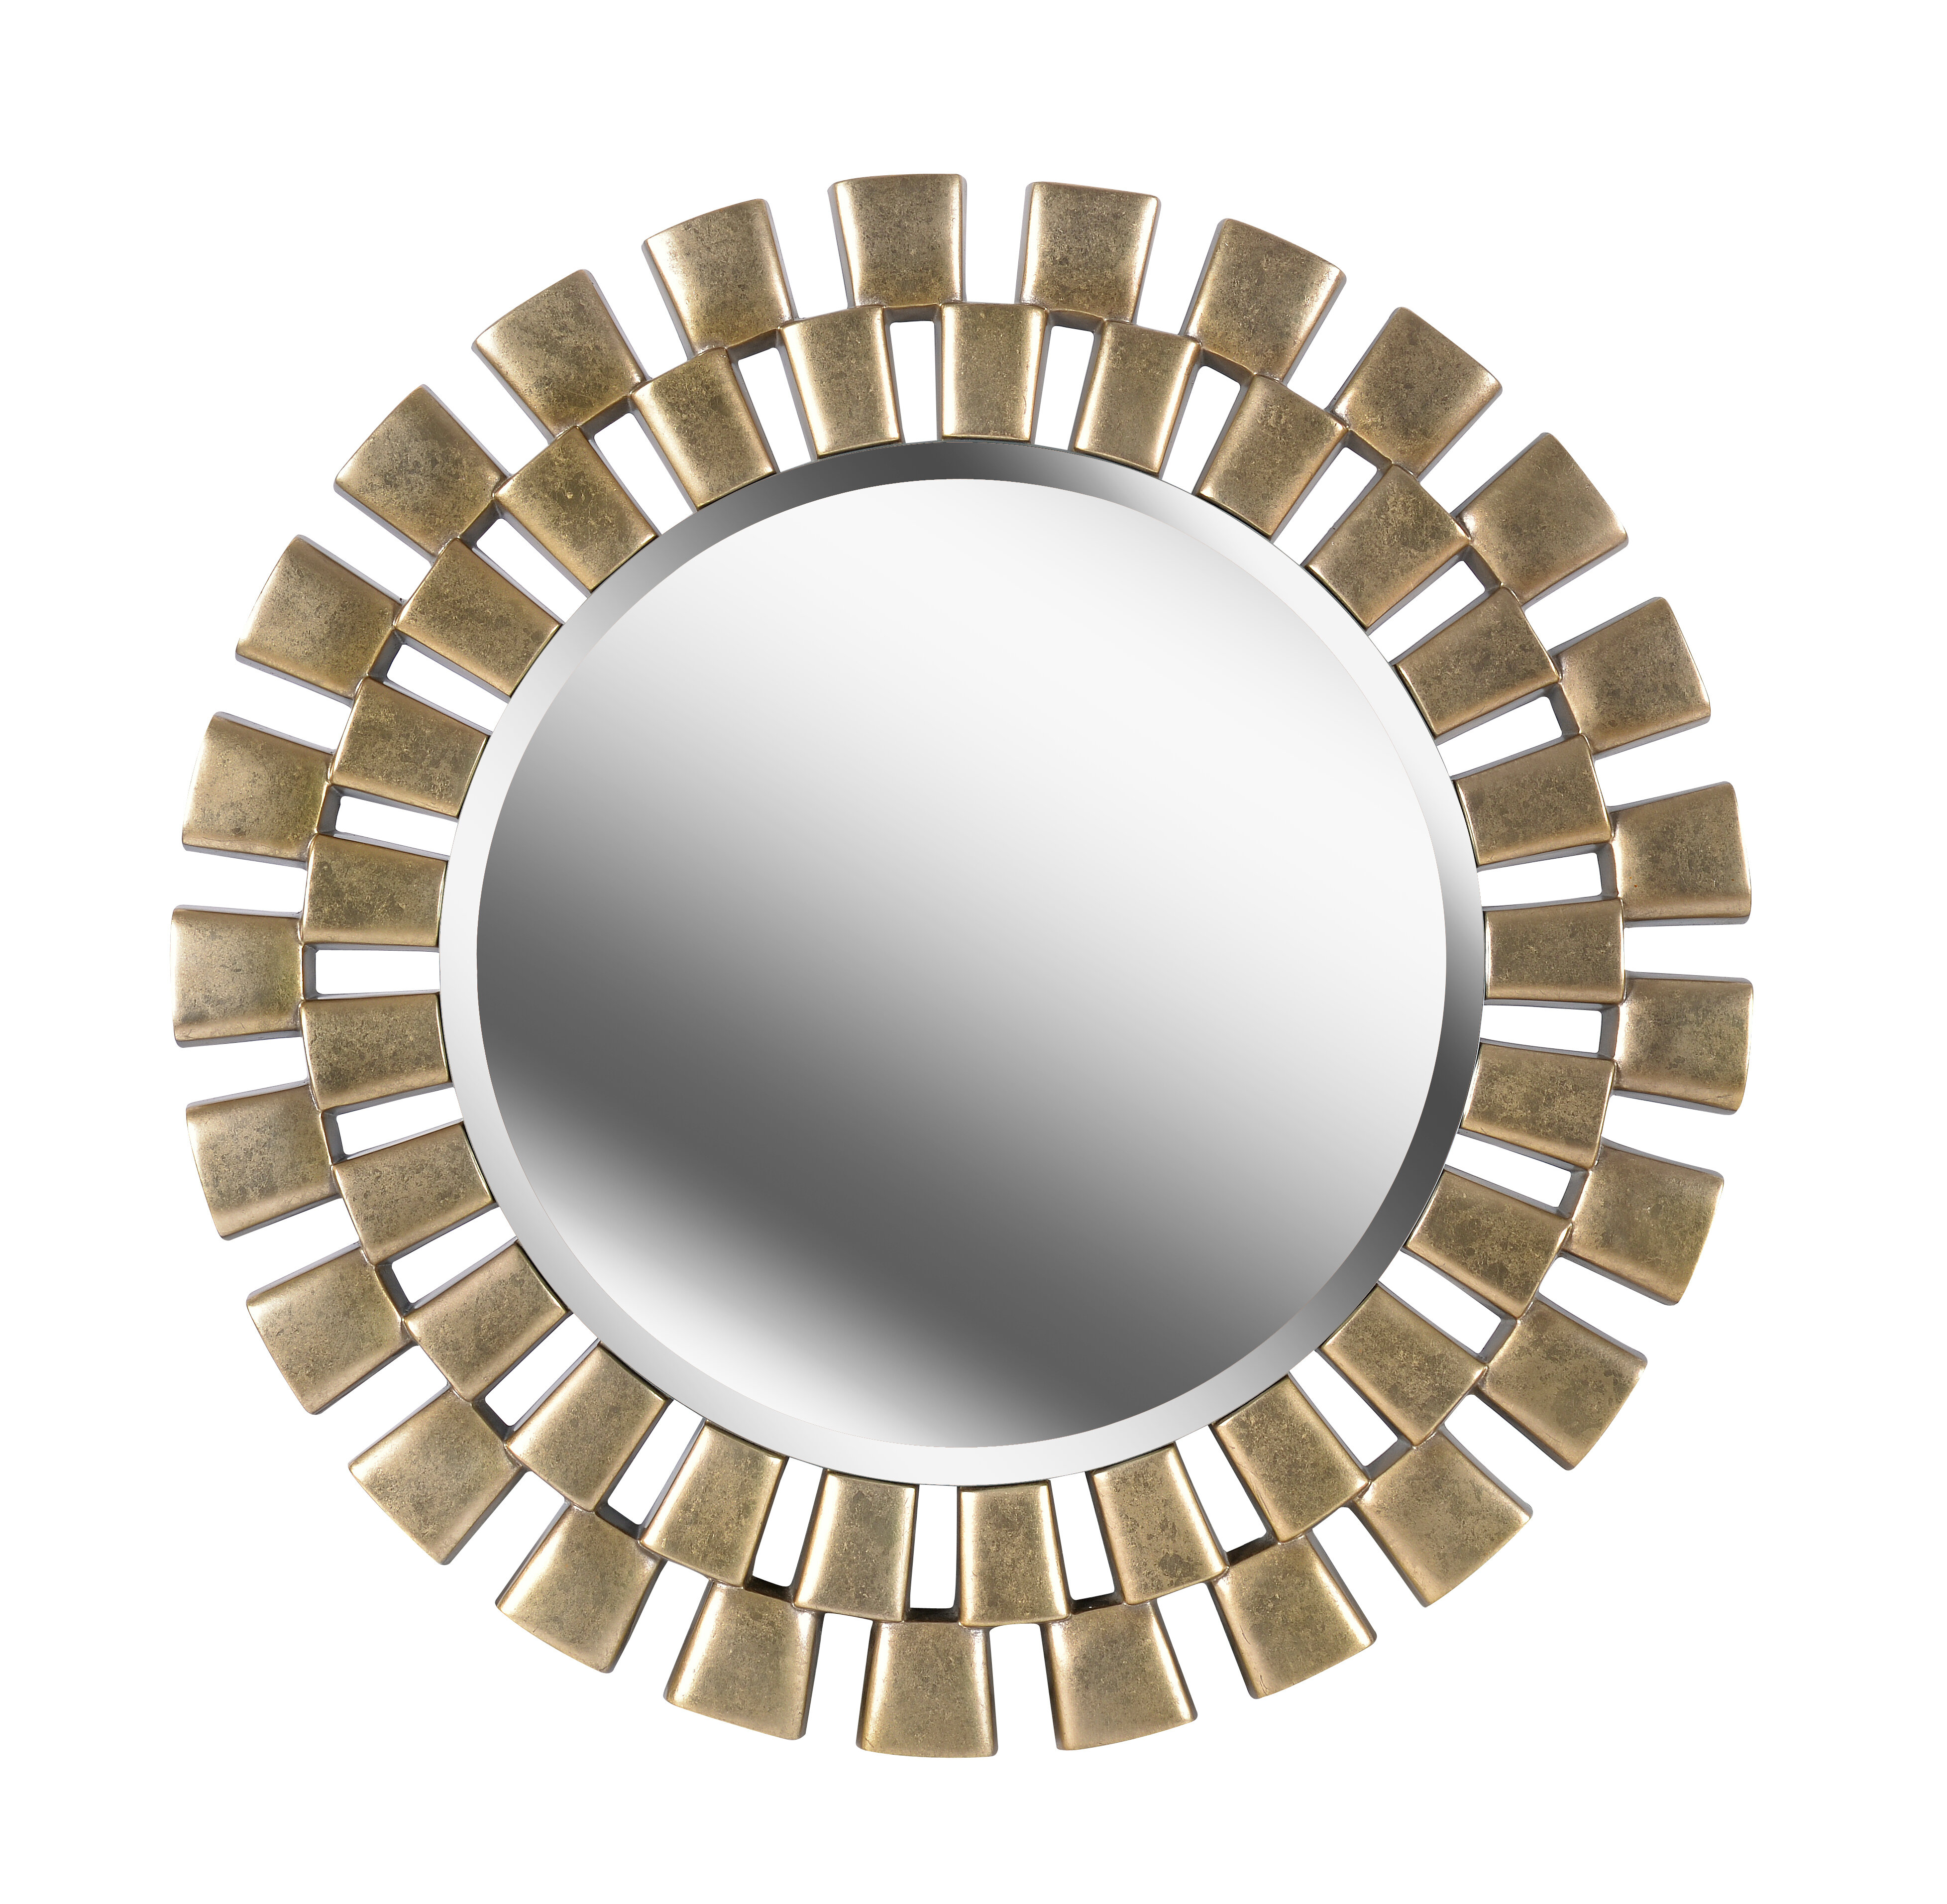 Glam Beveled Accent Mirror With Glam Beveled Accent Mirrors (View 3 of 30)